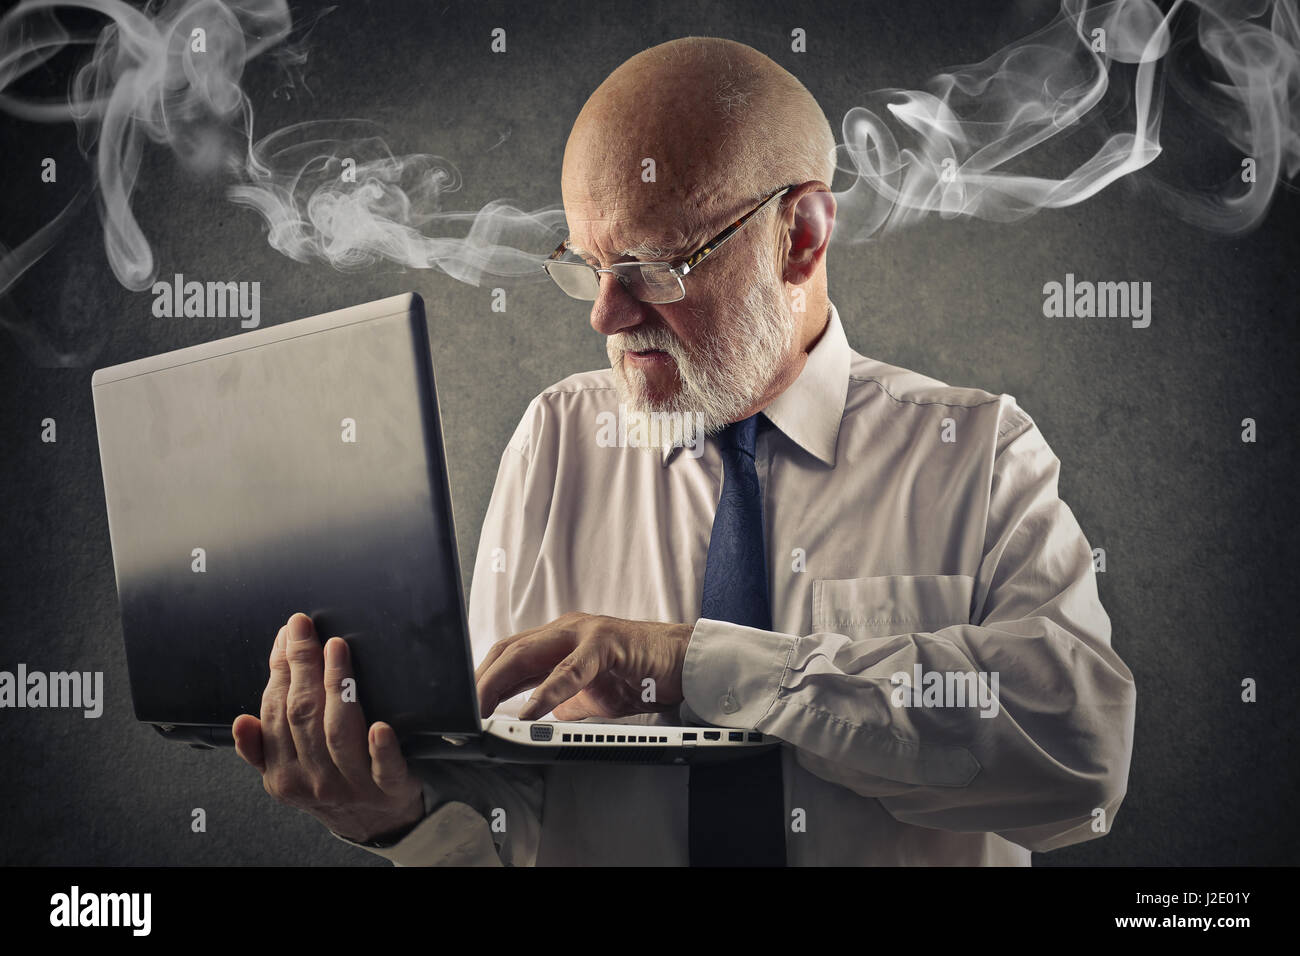 Mad businessman, steam coming out of his ears - Stock Image